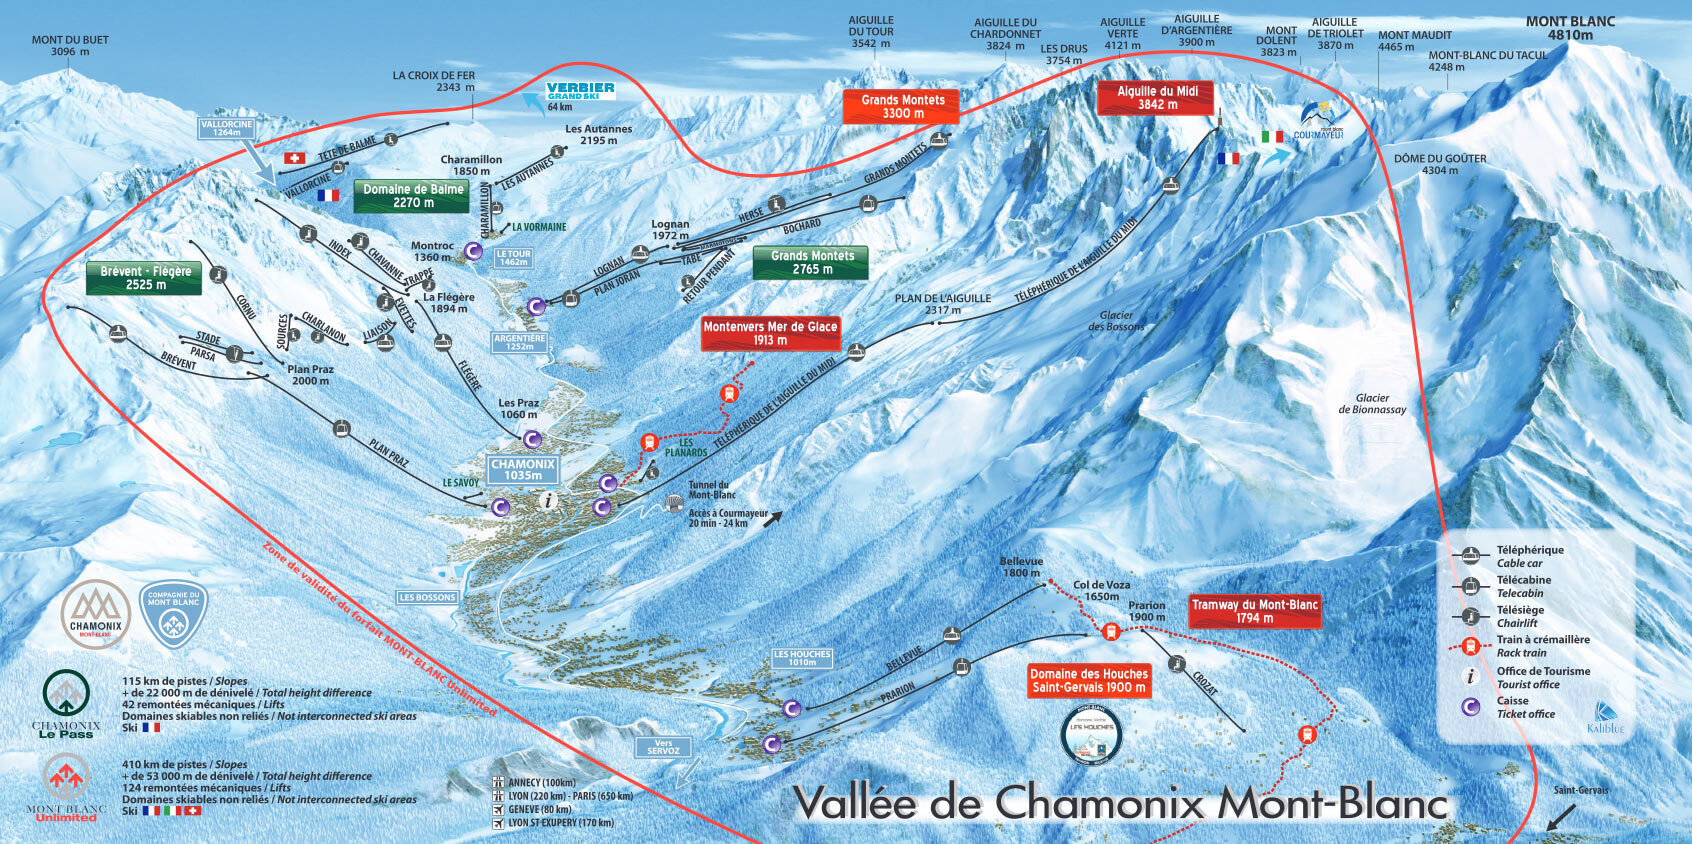 Chamonix Piste / Trail Map